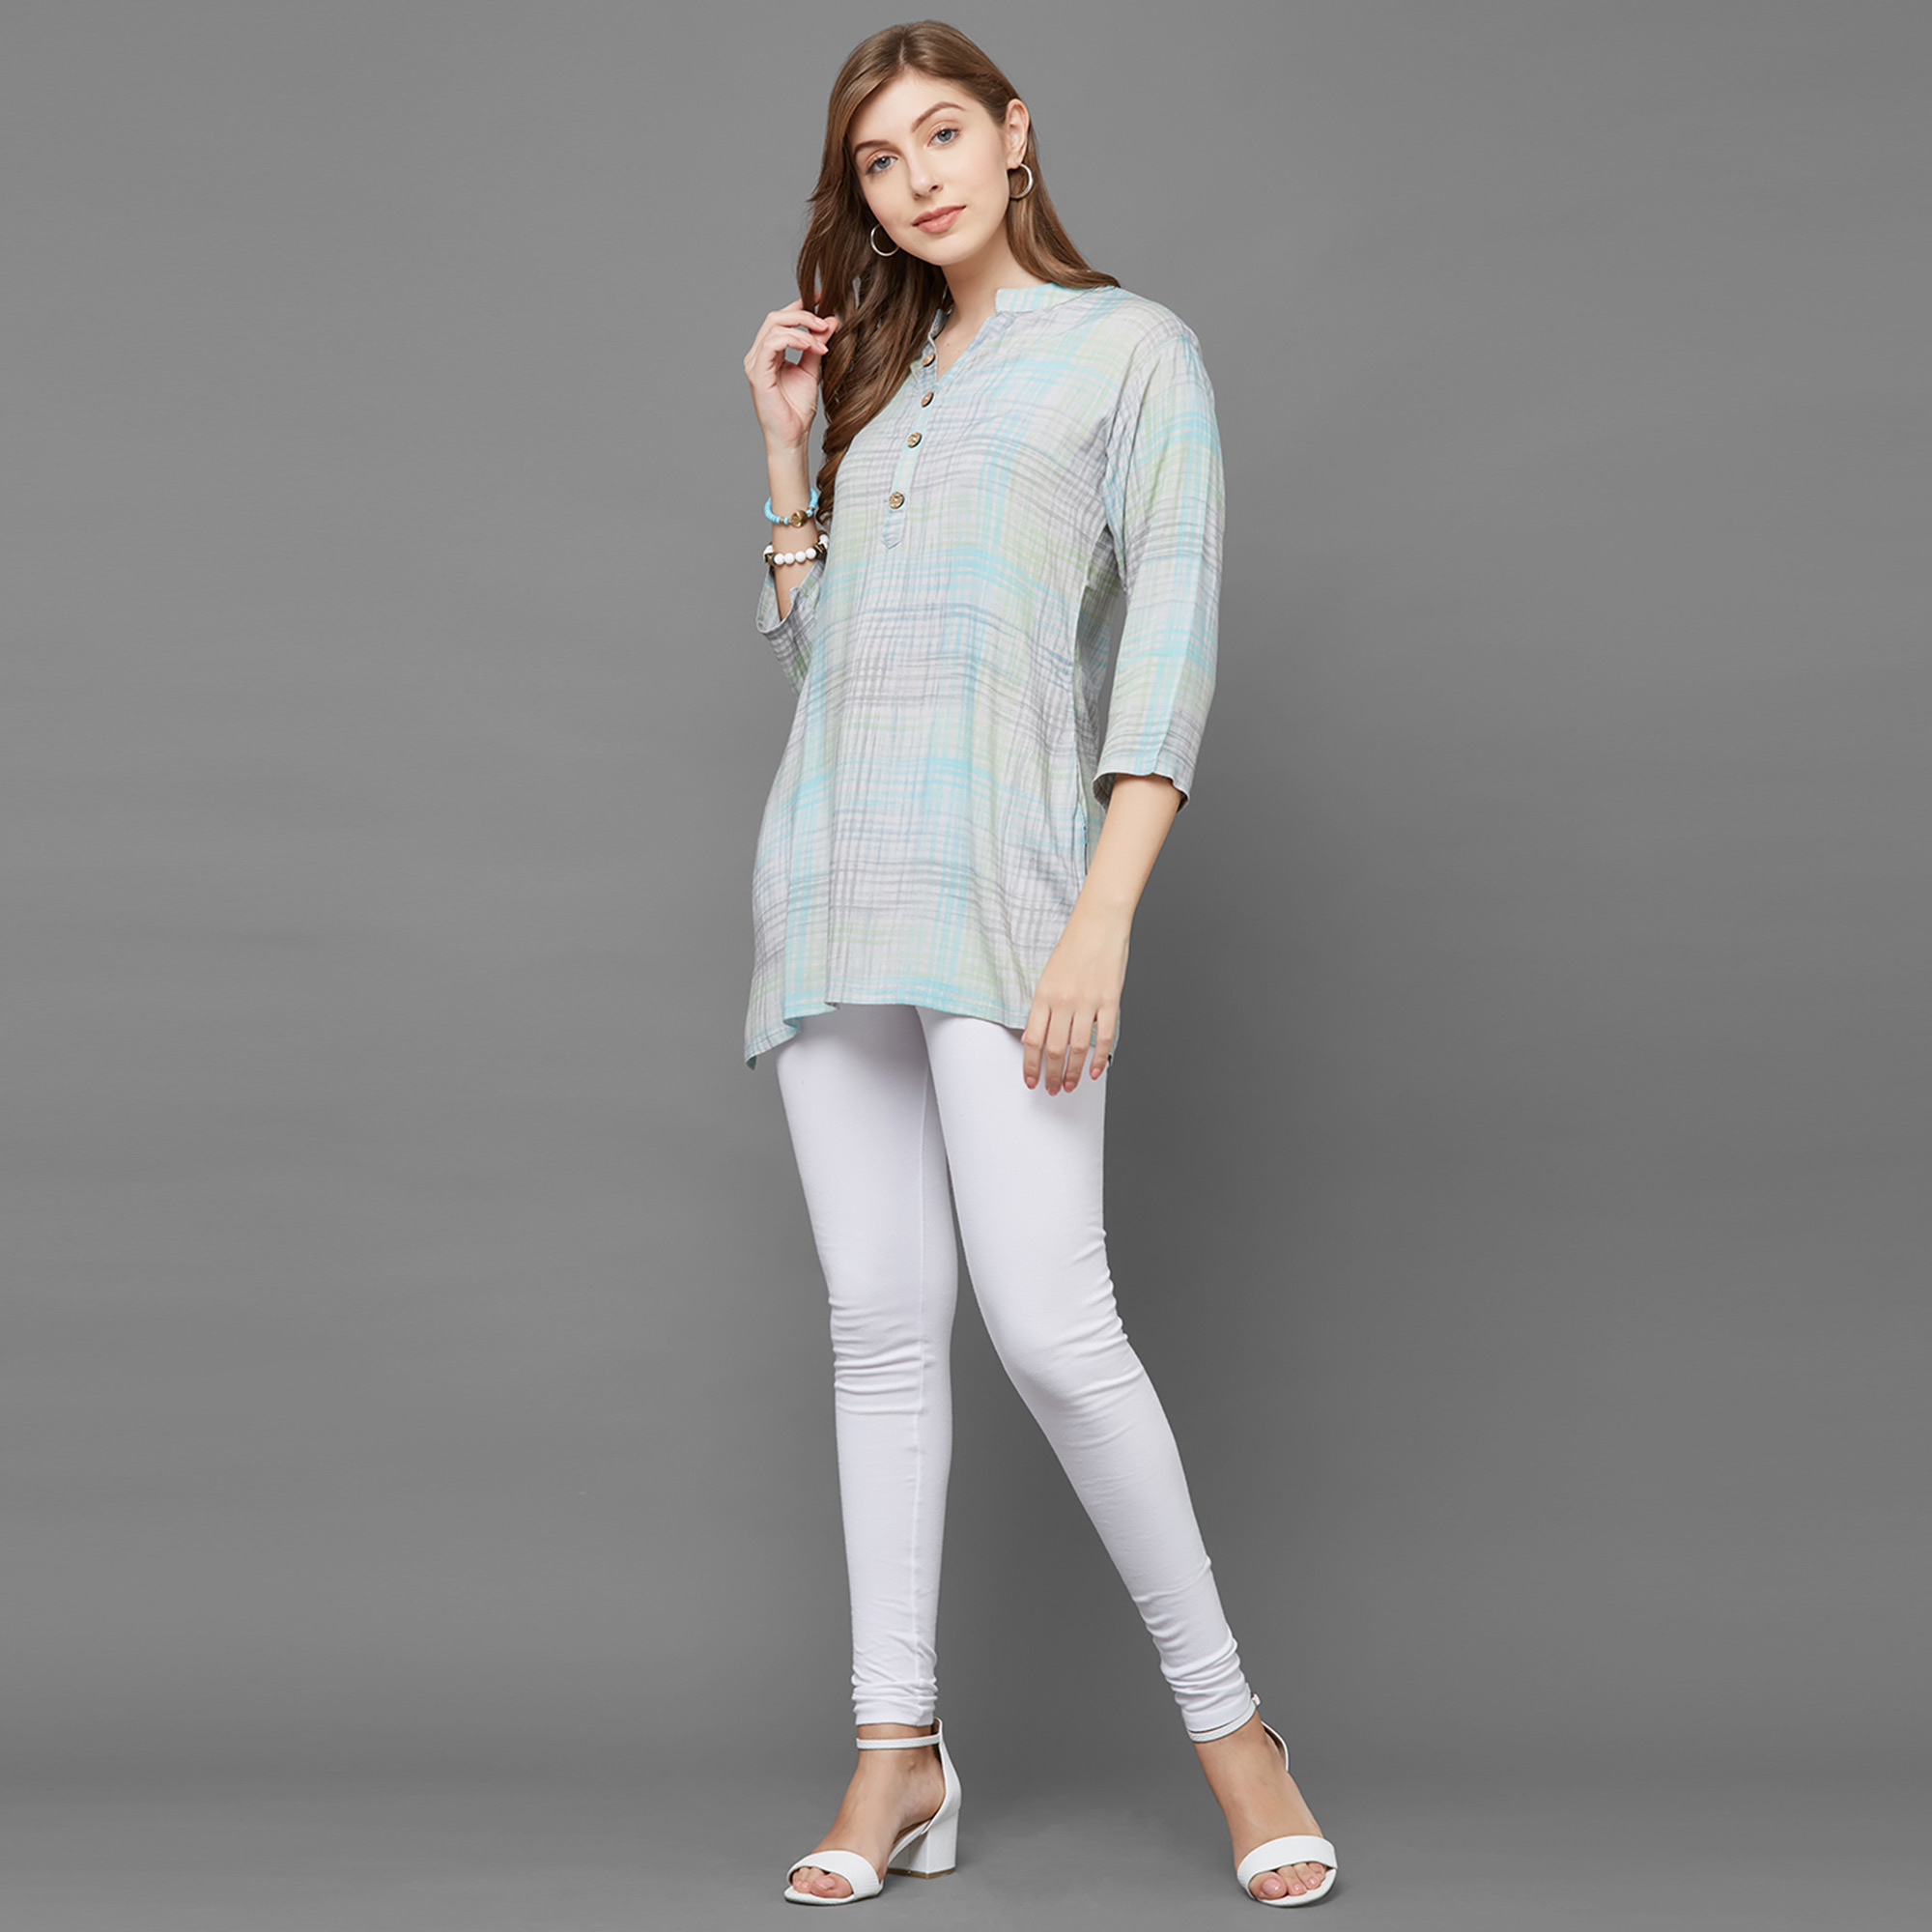 Eye-catching Blue Colored Casual Printed Cotton Top